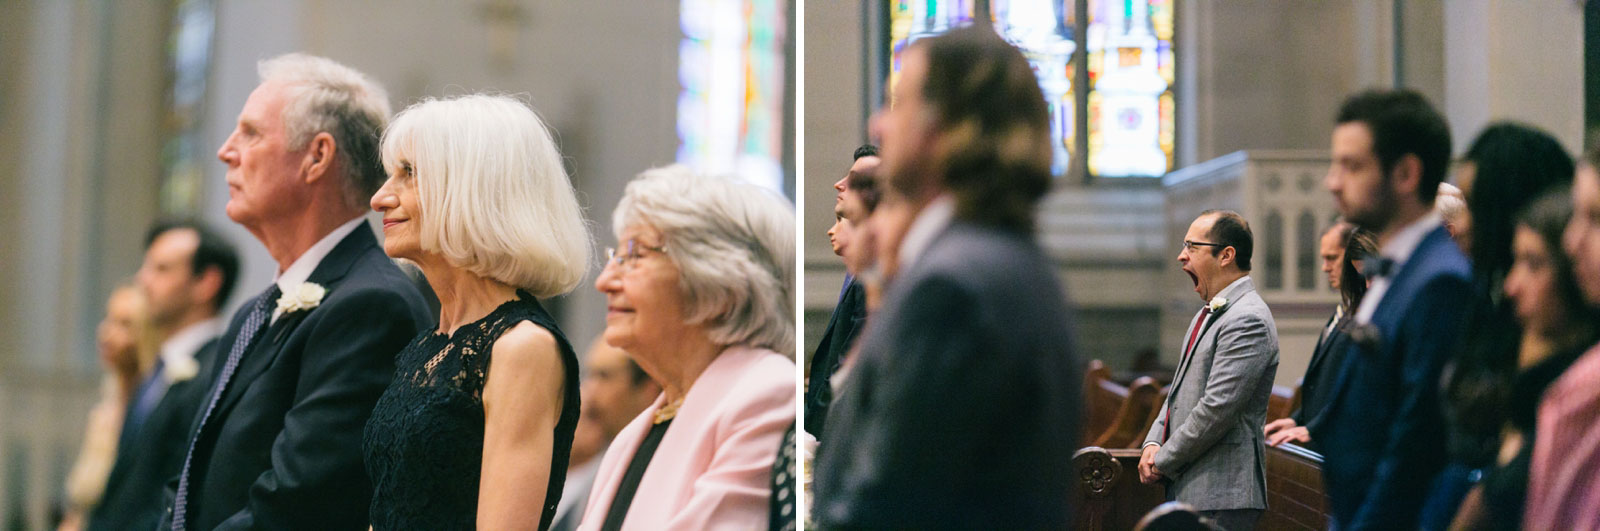 parents of the bride smiling and watching ceremony at traditional Roman Catholic wedding